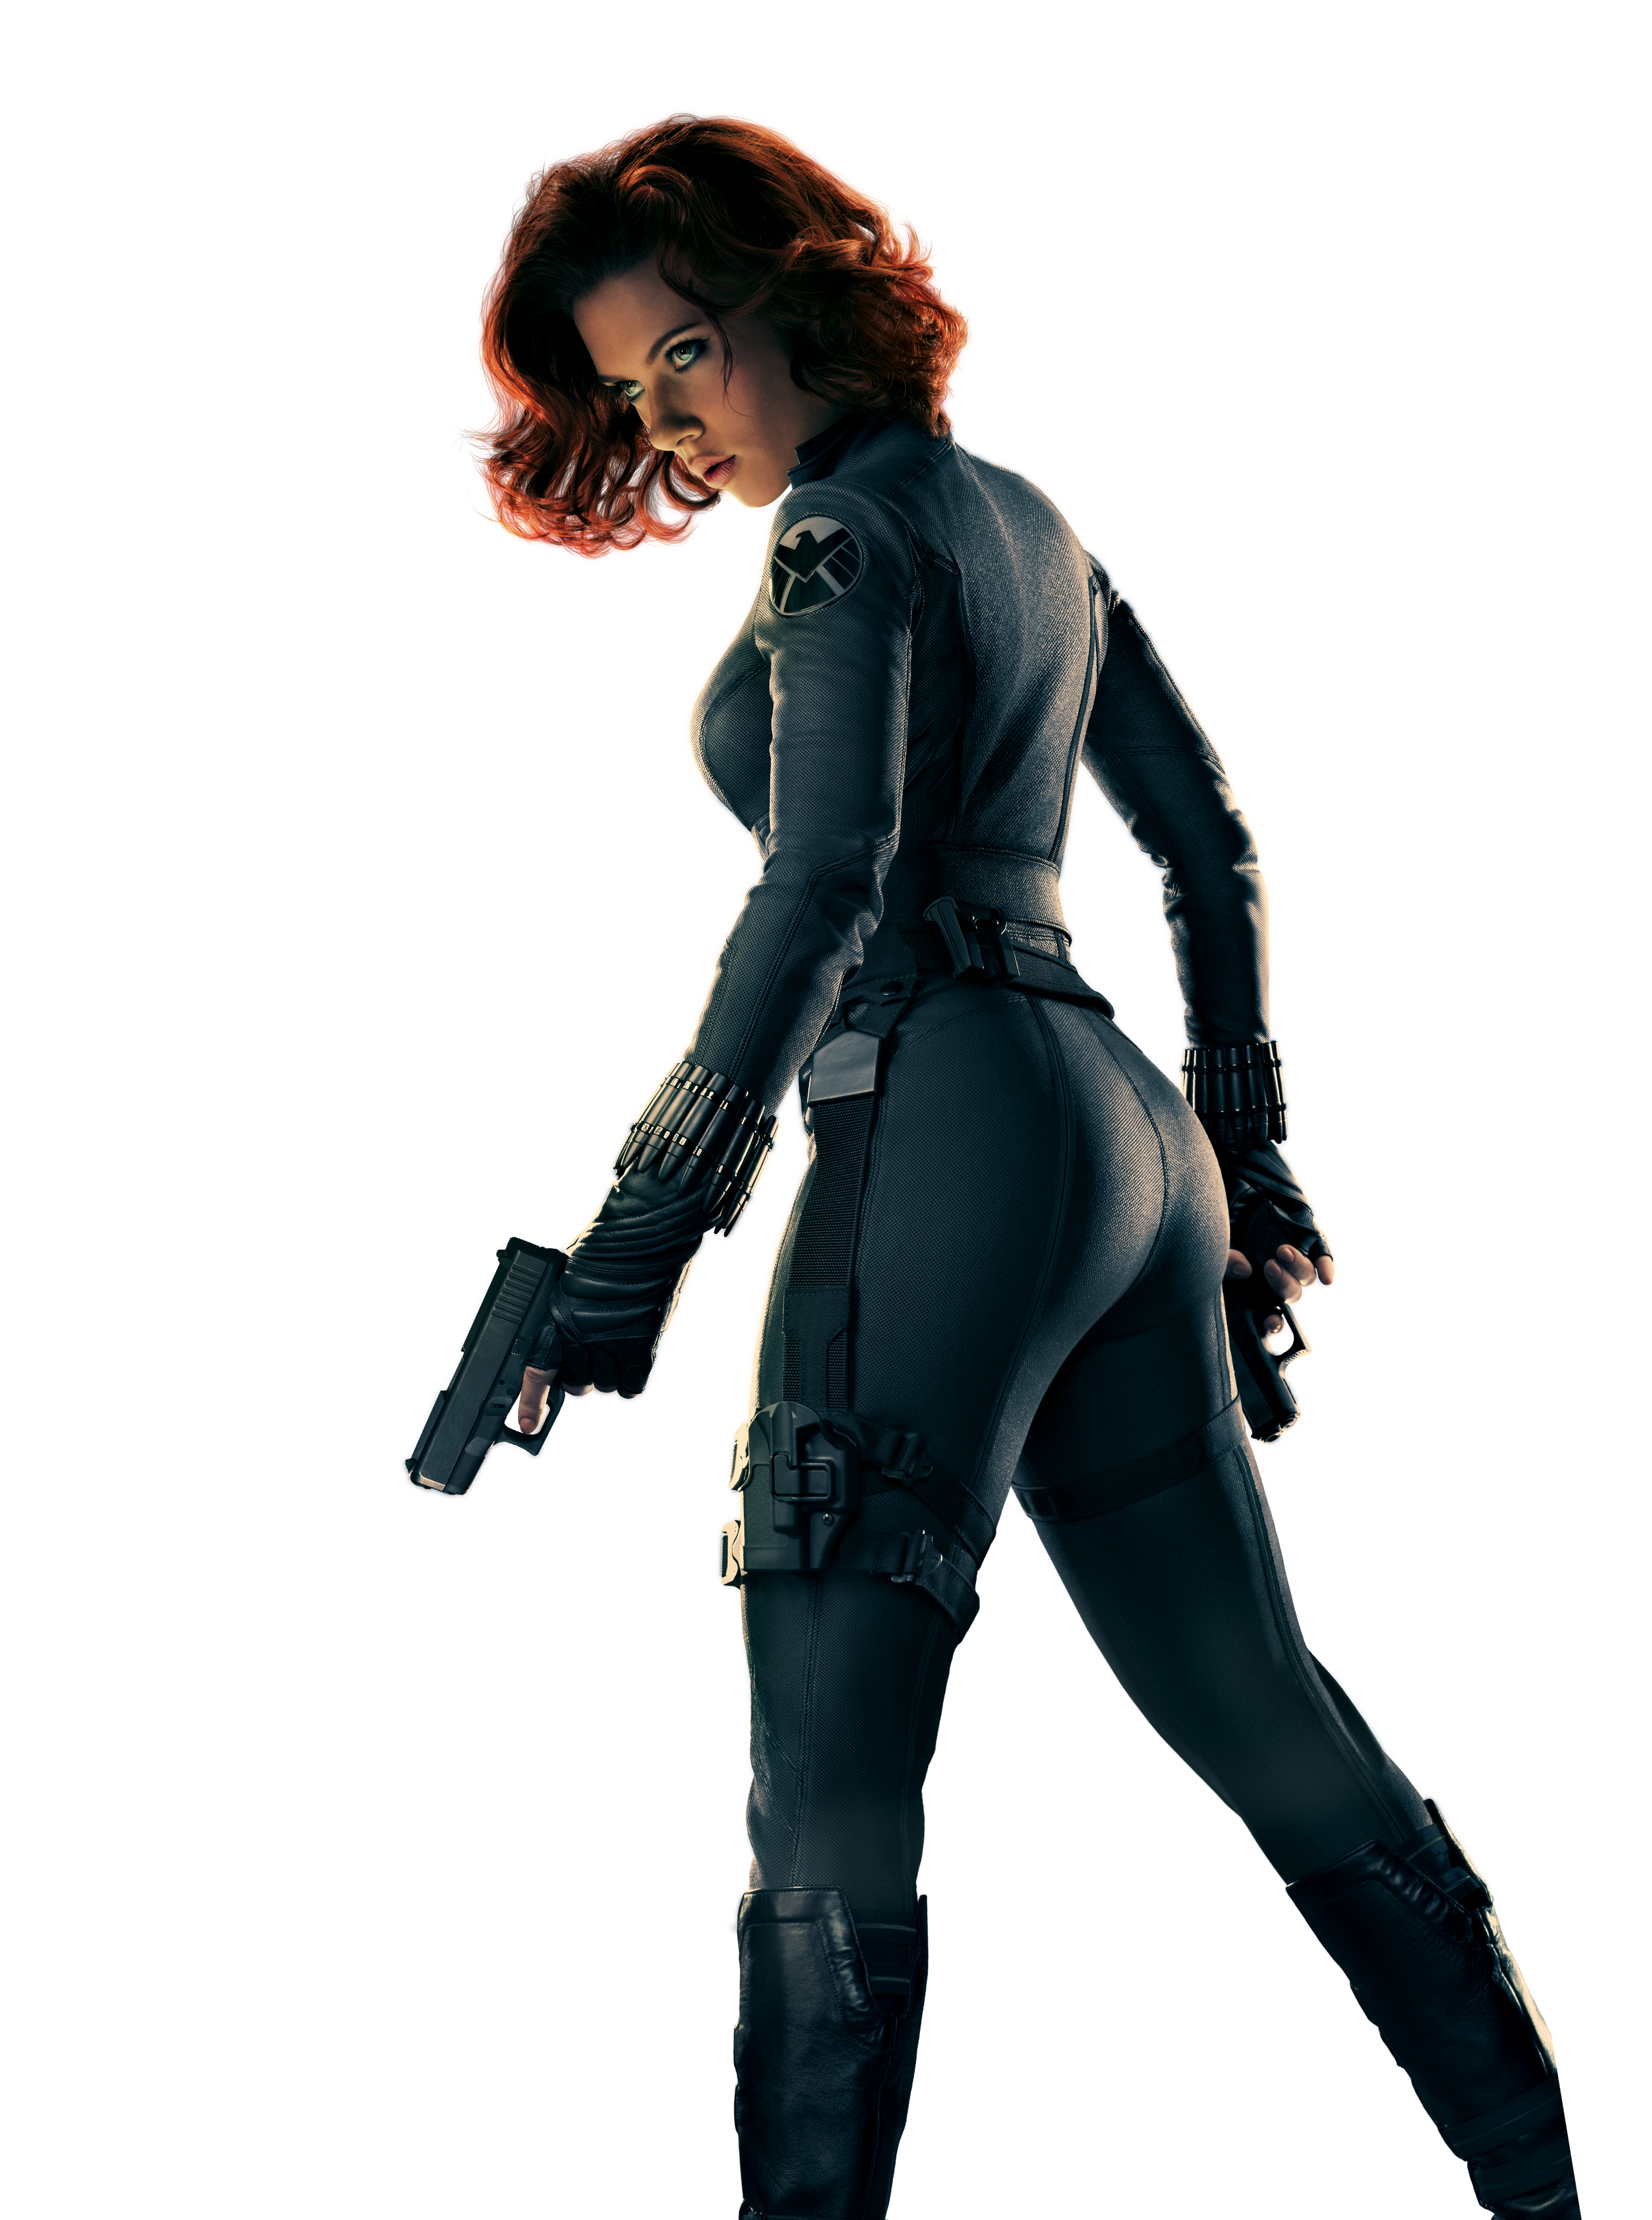 Black Widow By Cptcommunist D8e32dl Png 3427 4604 Black Widow Marvel Black Widow Scarlett Scarlett Johansson Workout